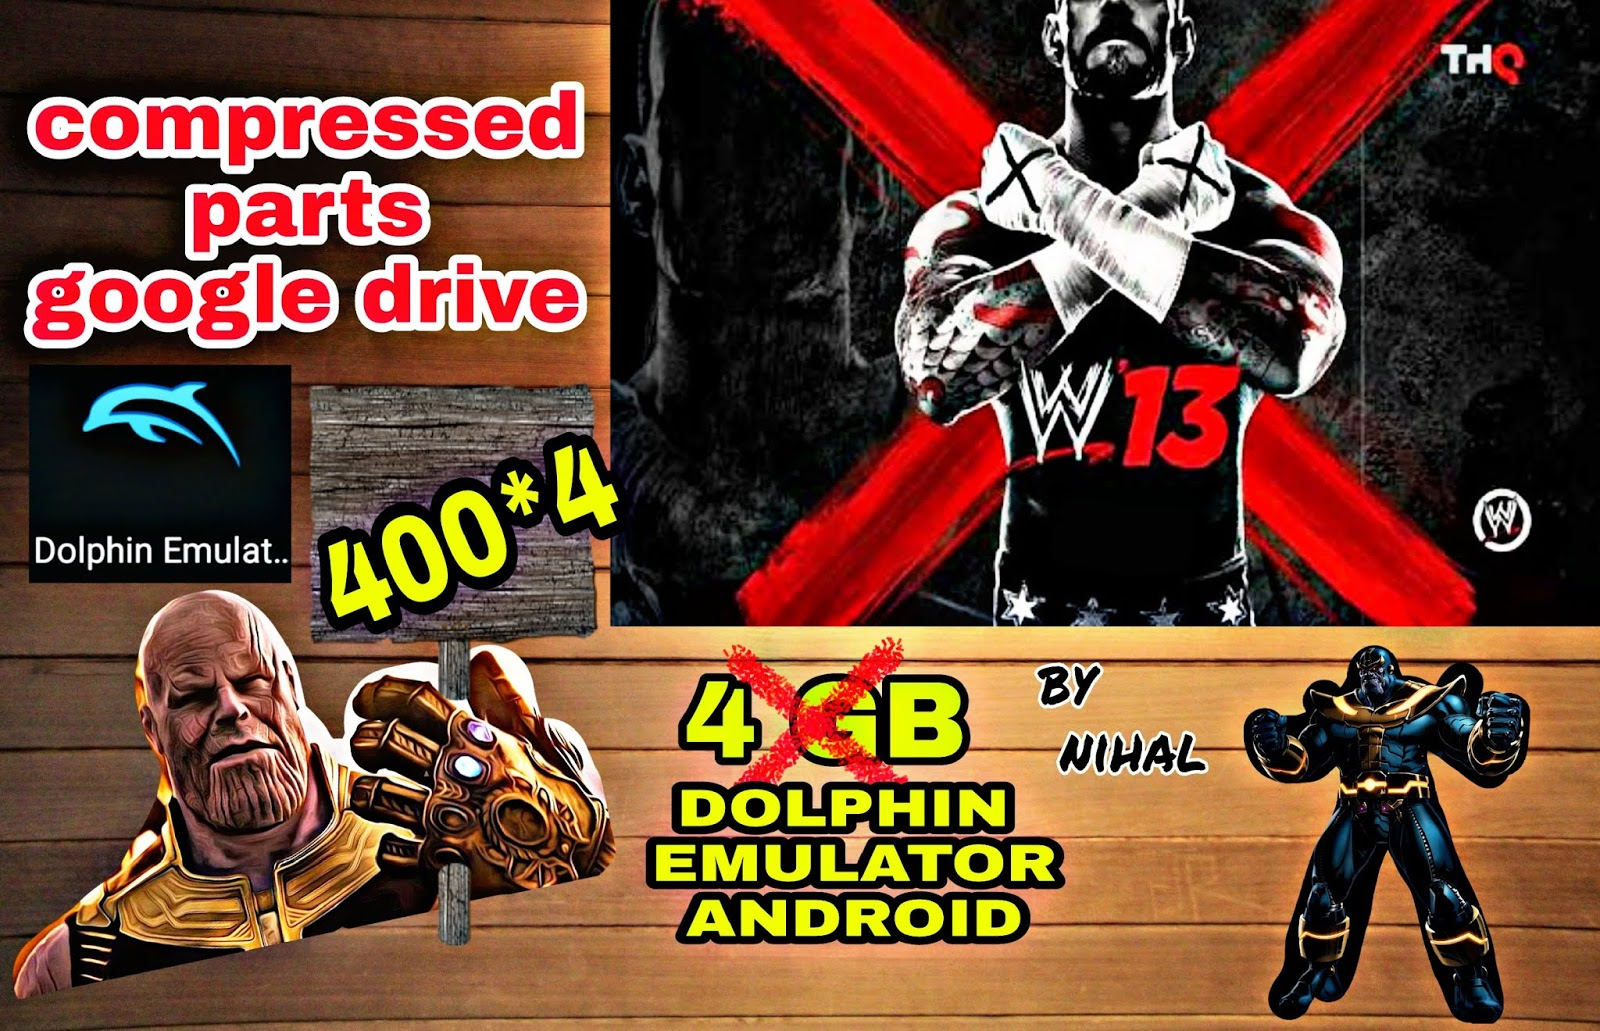 Wwe 2k13 apk download for android | Wwe 2k13 For Android